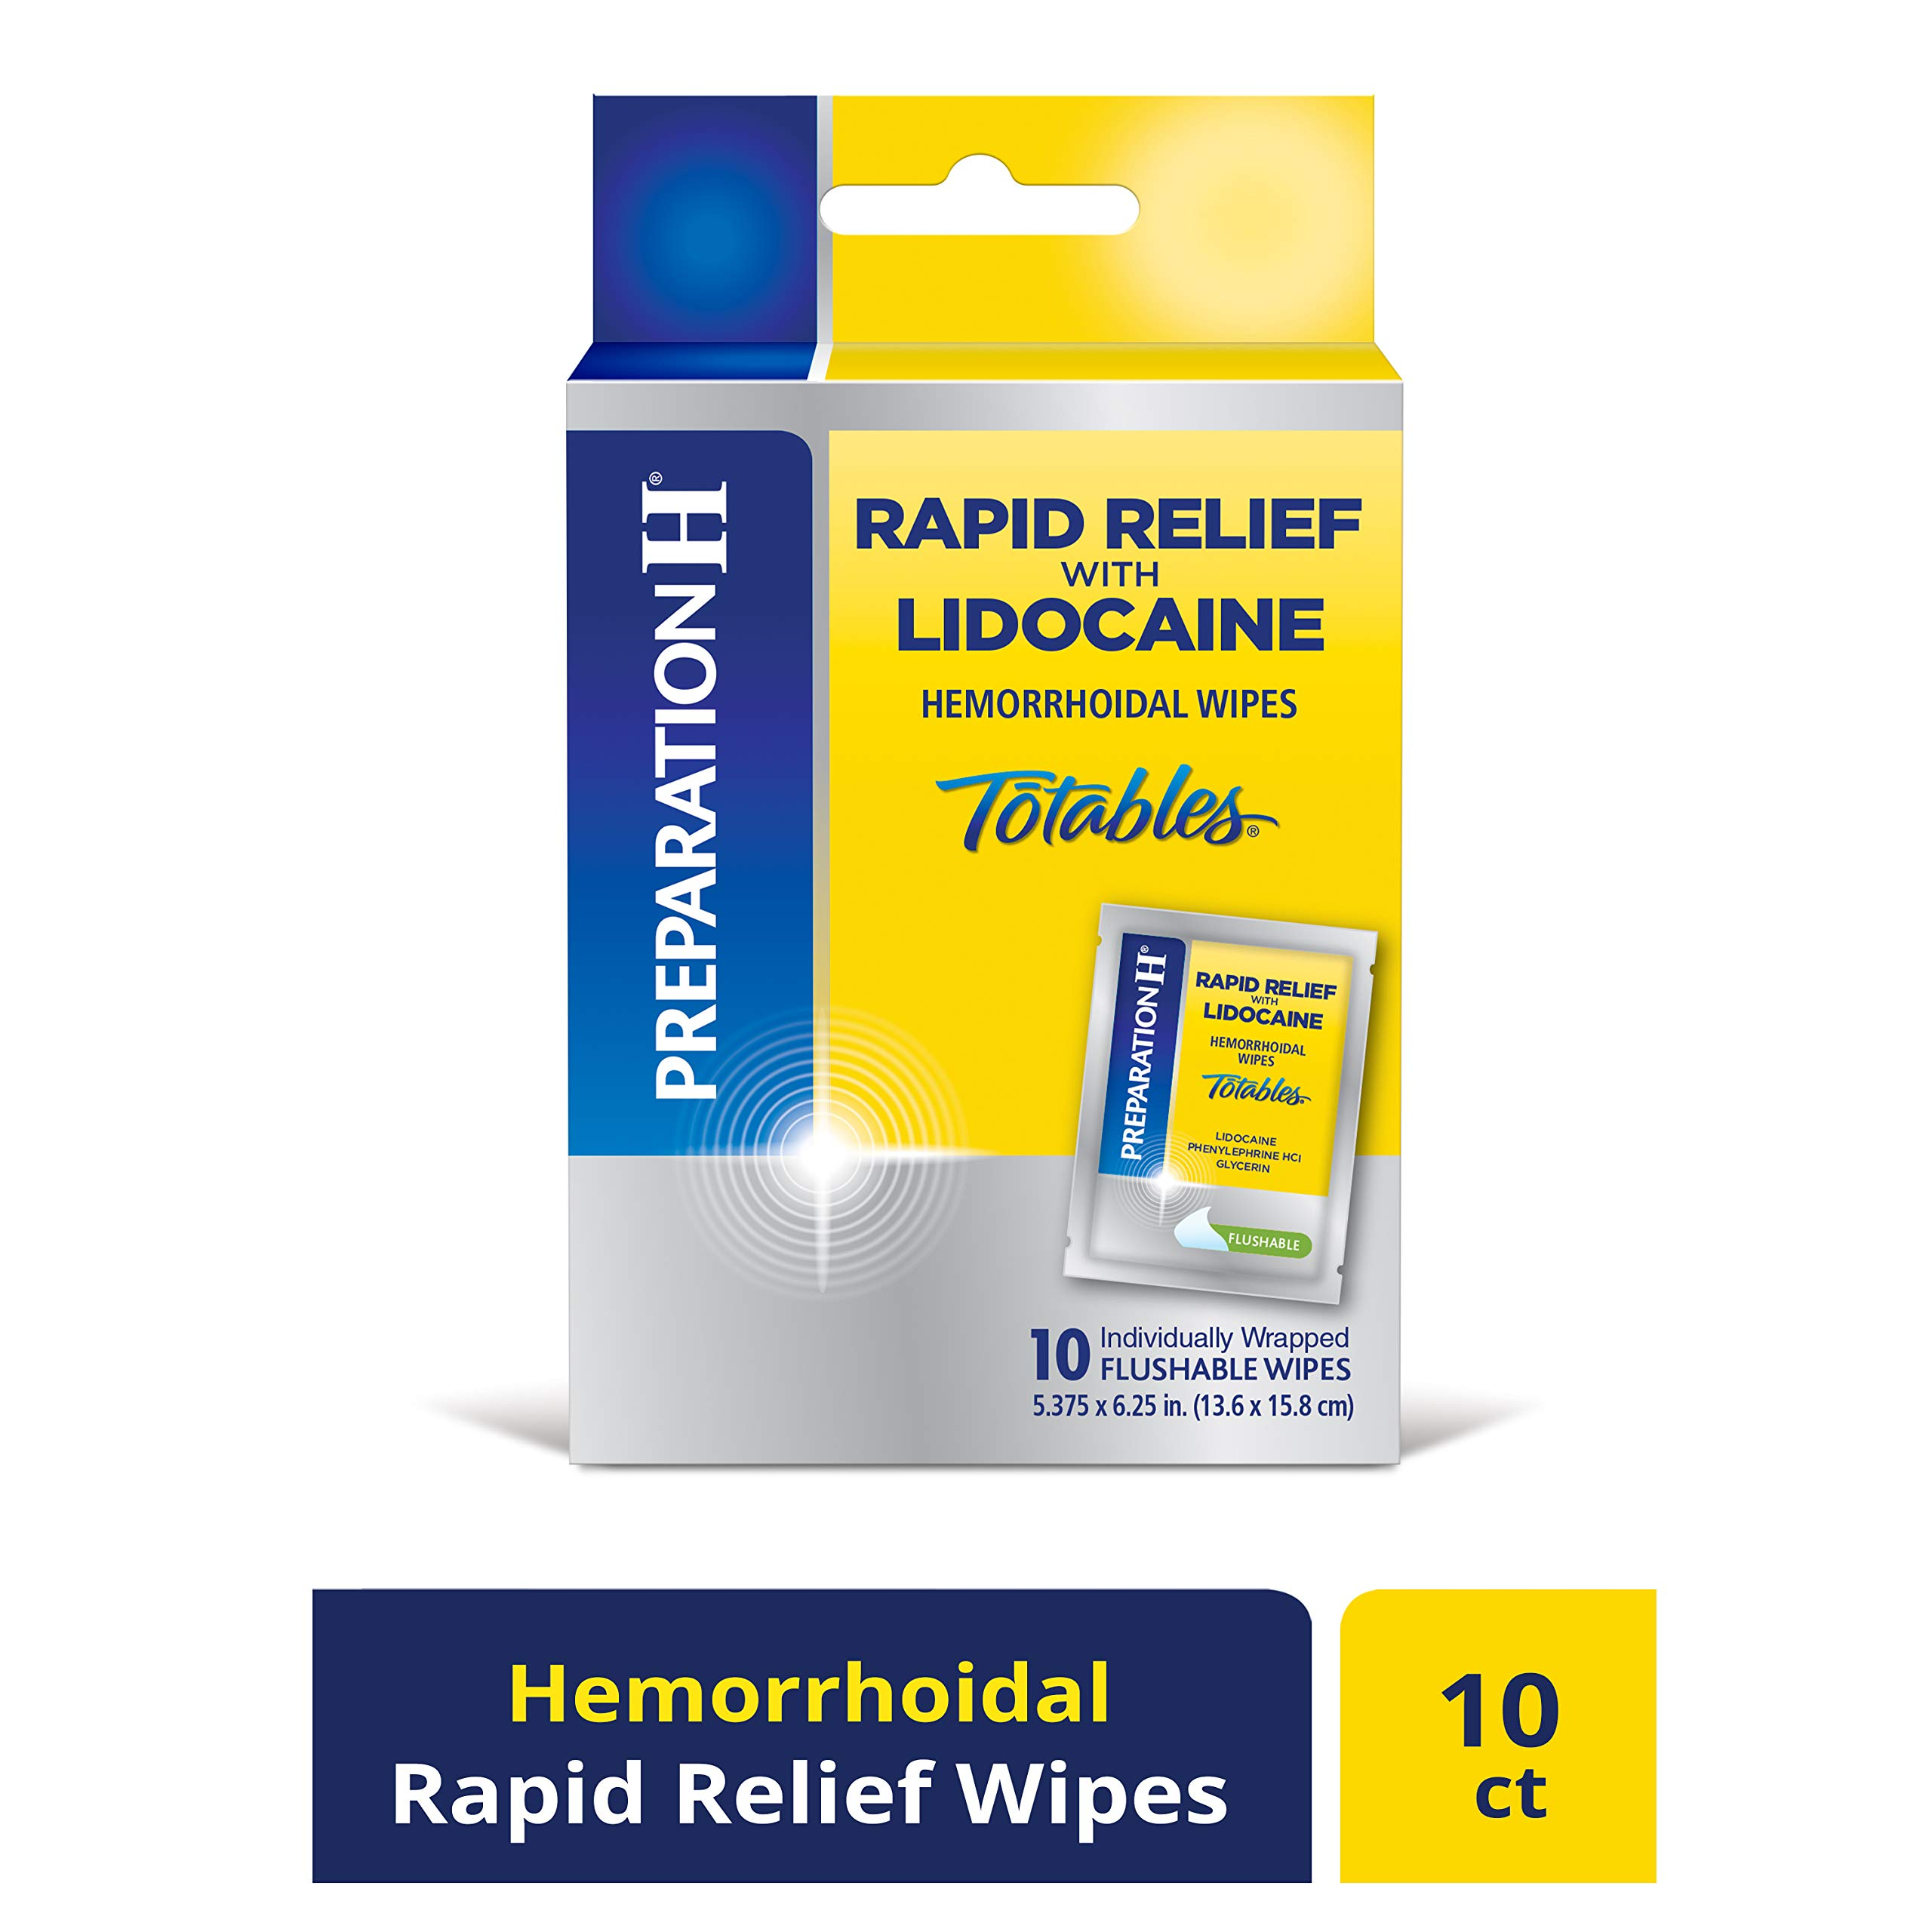 PREPARATION H Rapid Relief with Lidocaine Hemorrhoid Symptom Treatment Flushable Wipes, Numbing Relief for Pain, Burning & Itching, Reduces Swelling, 10 Count